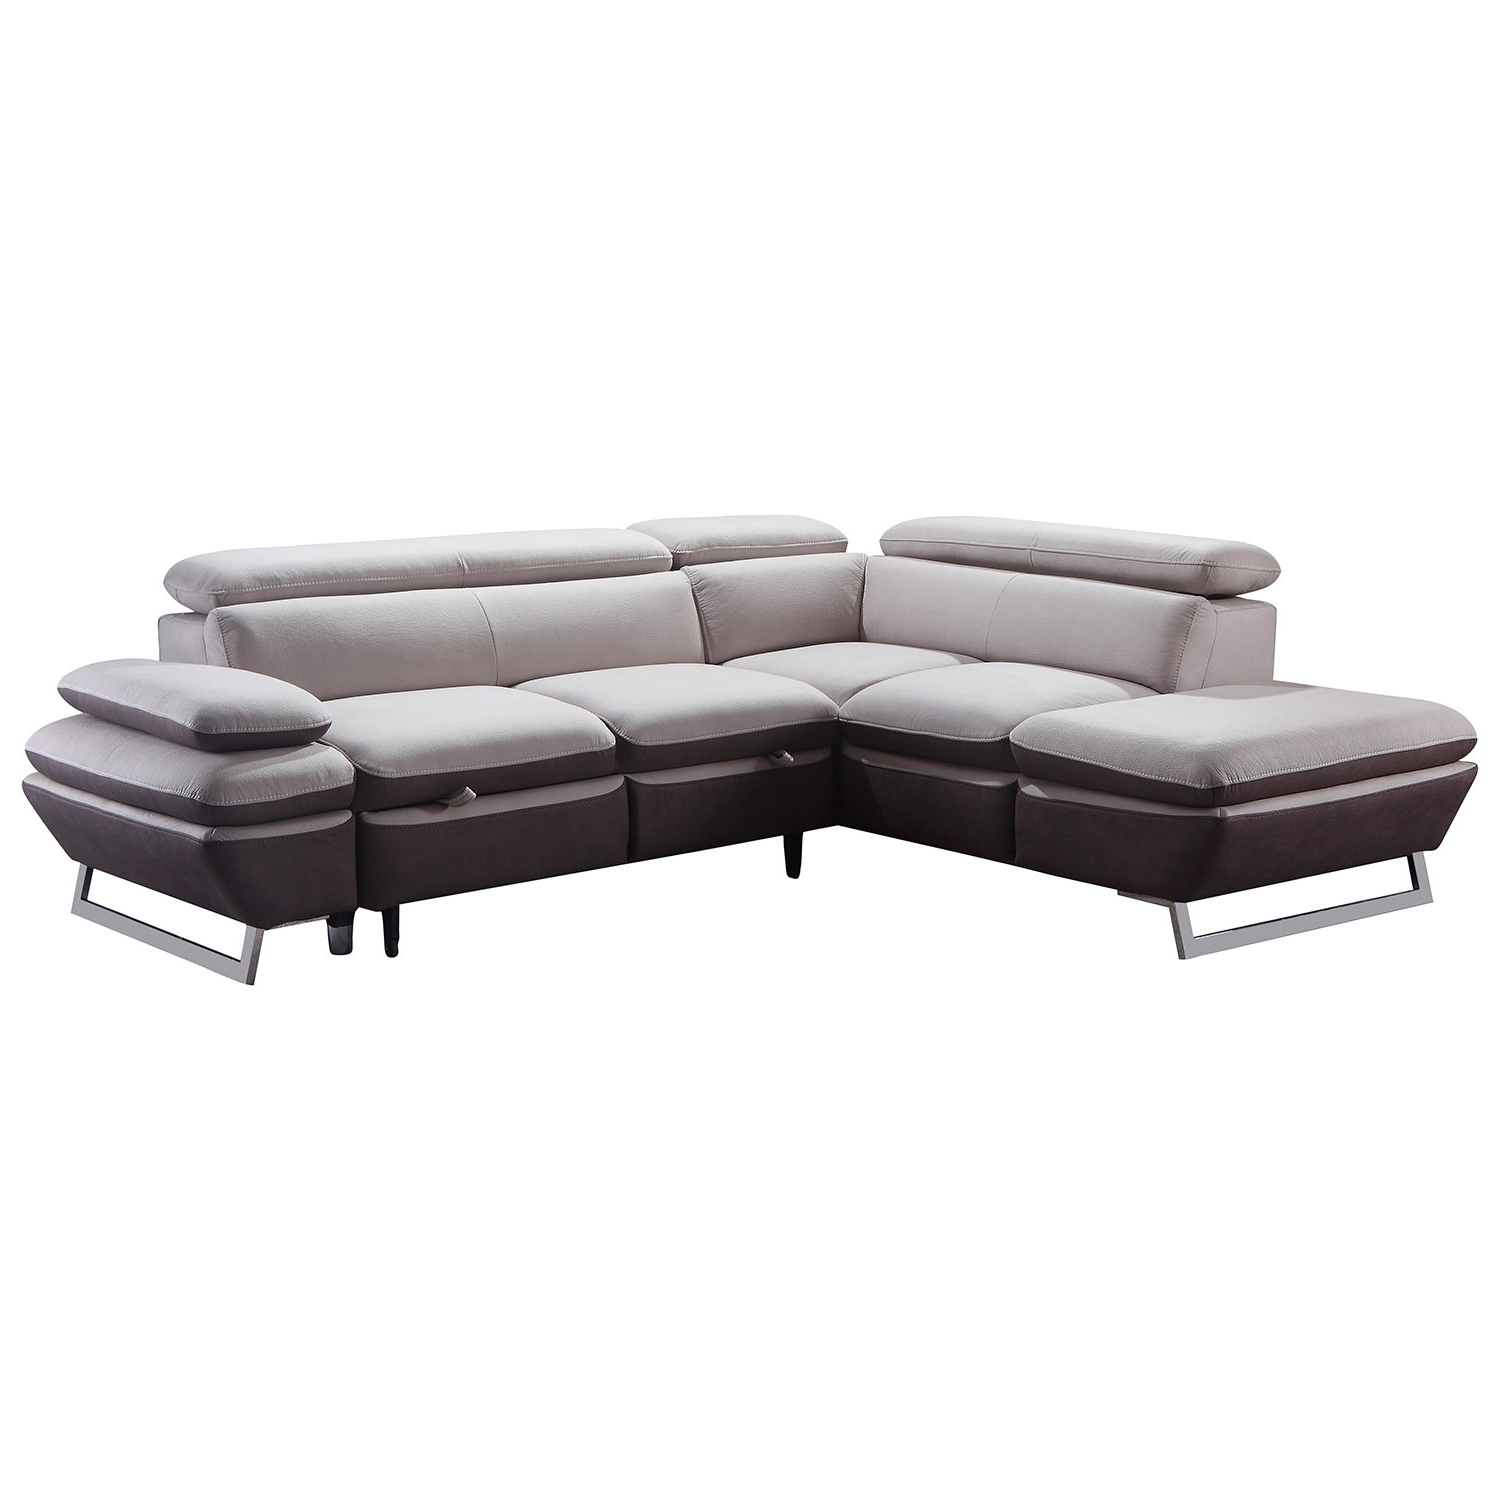 20 Best Collection Of Newfoundland Sectional Sofas For Newfoundland Sectional Sofas (View 5 of 10)